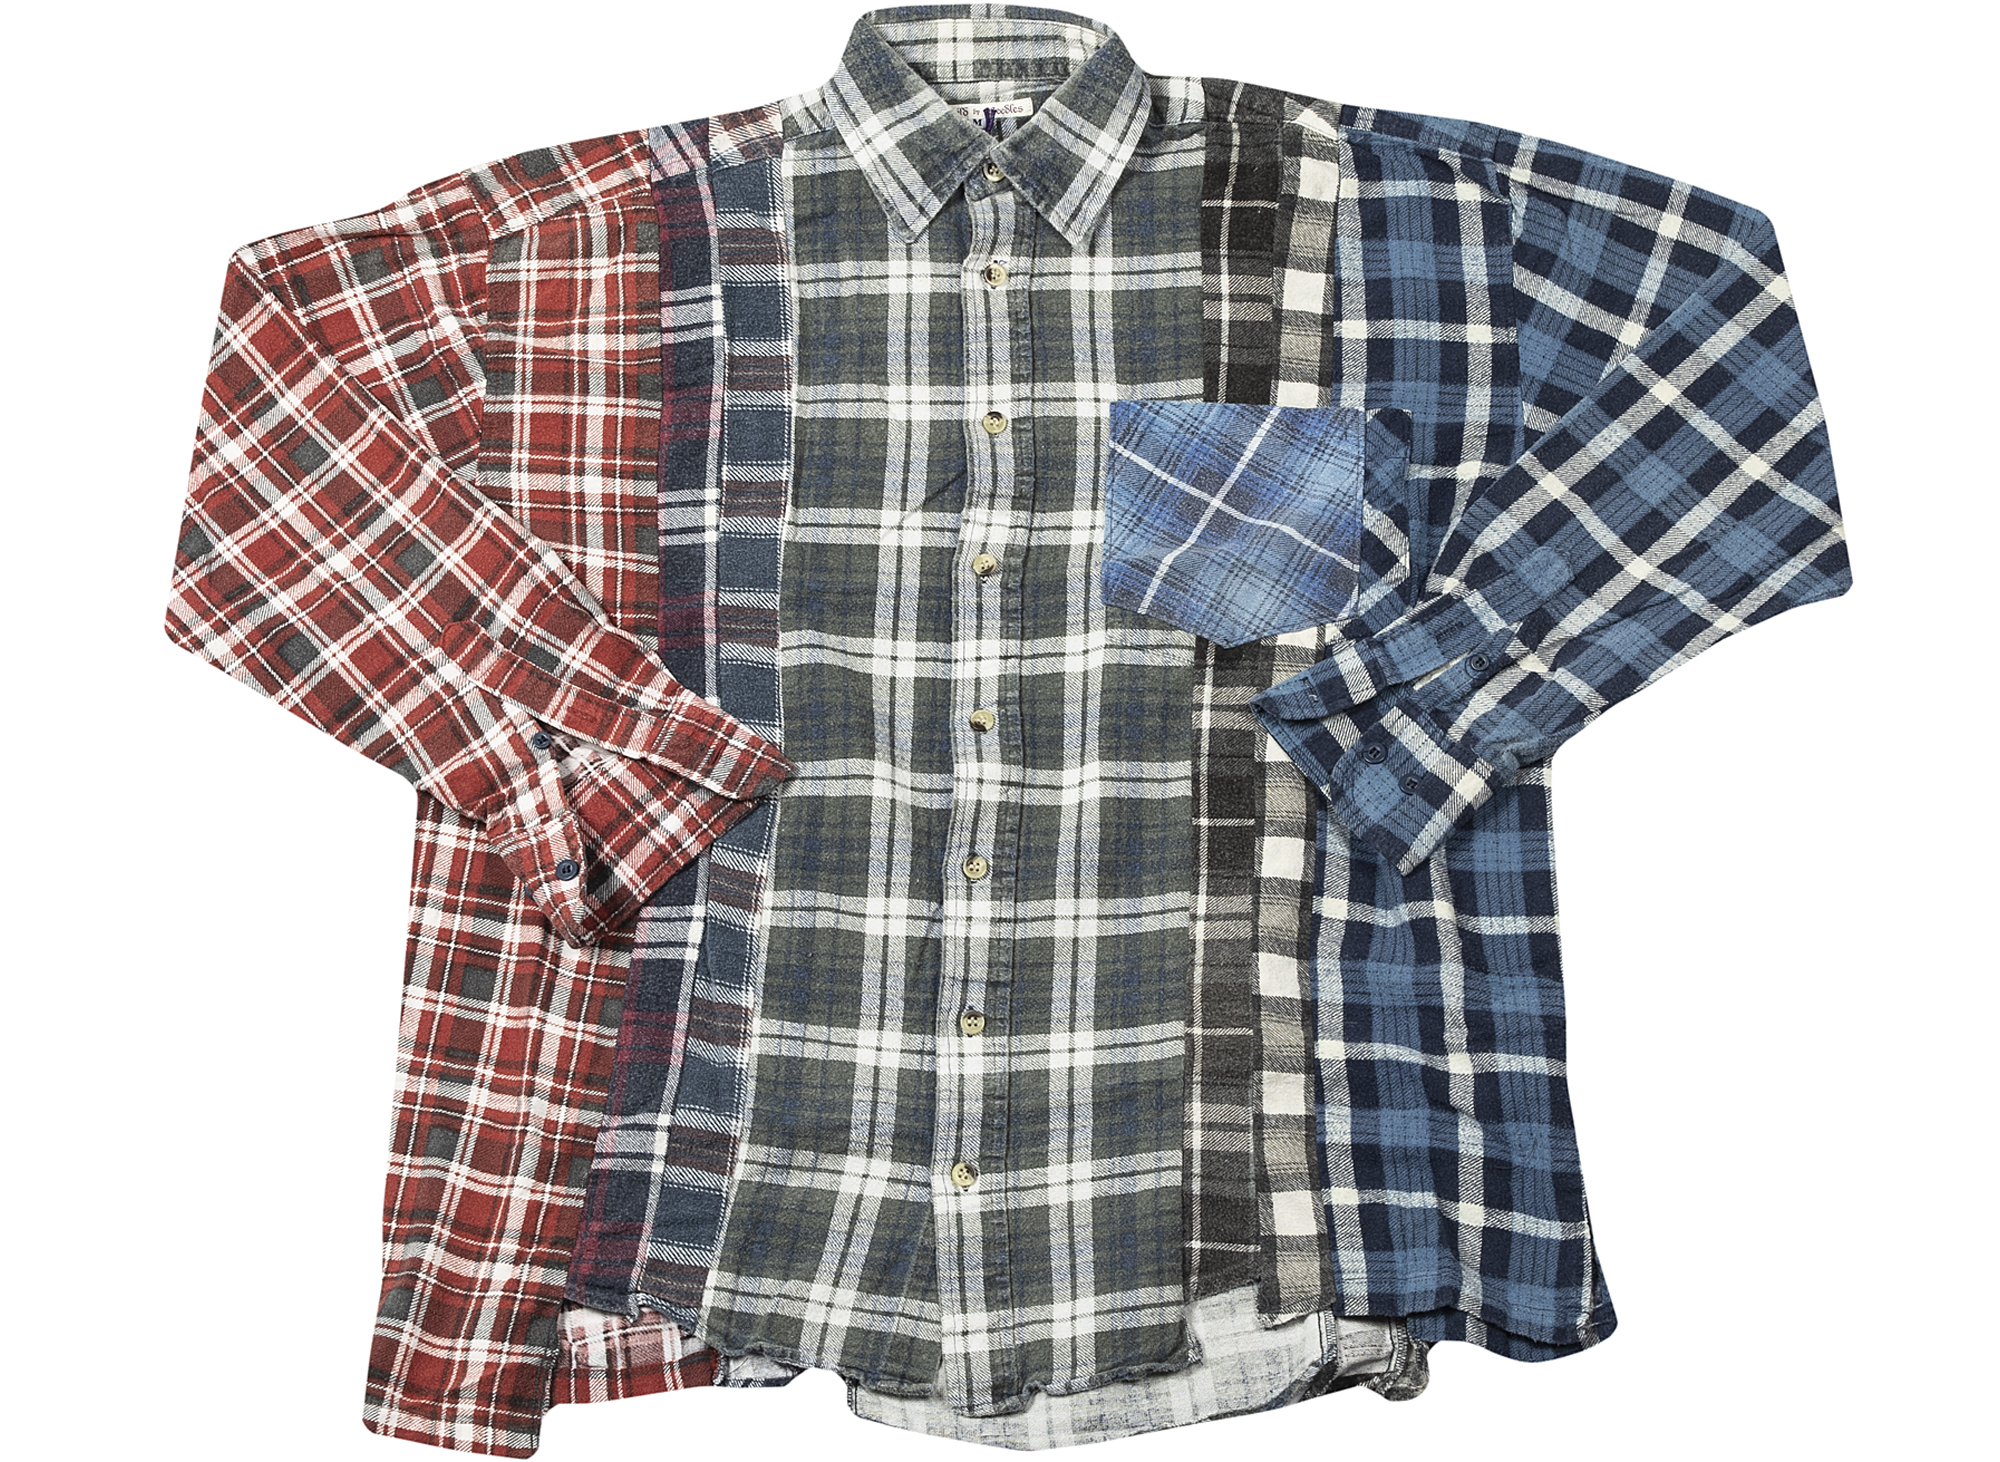 Needles Reconstructed 7 Cuts Flannel Shirt